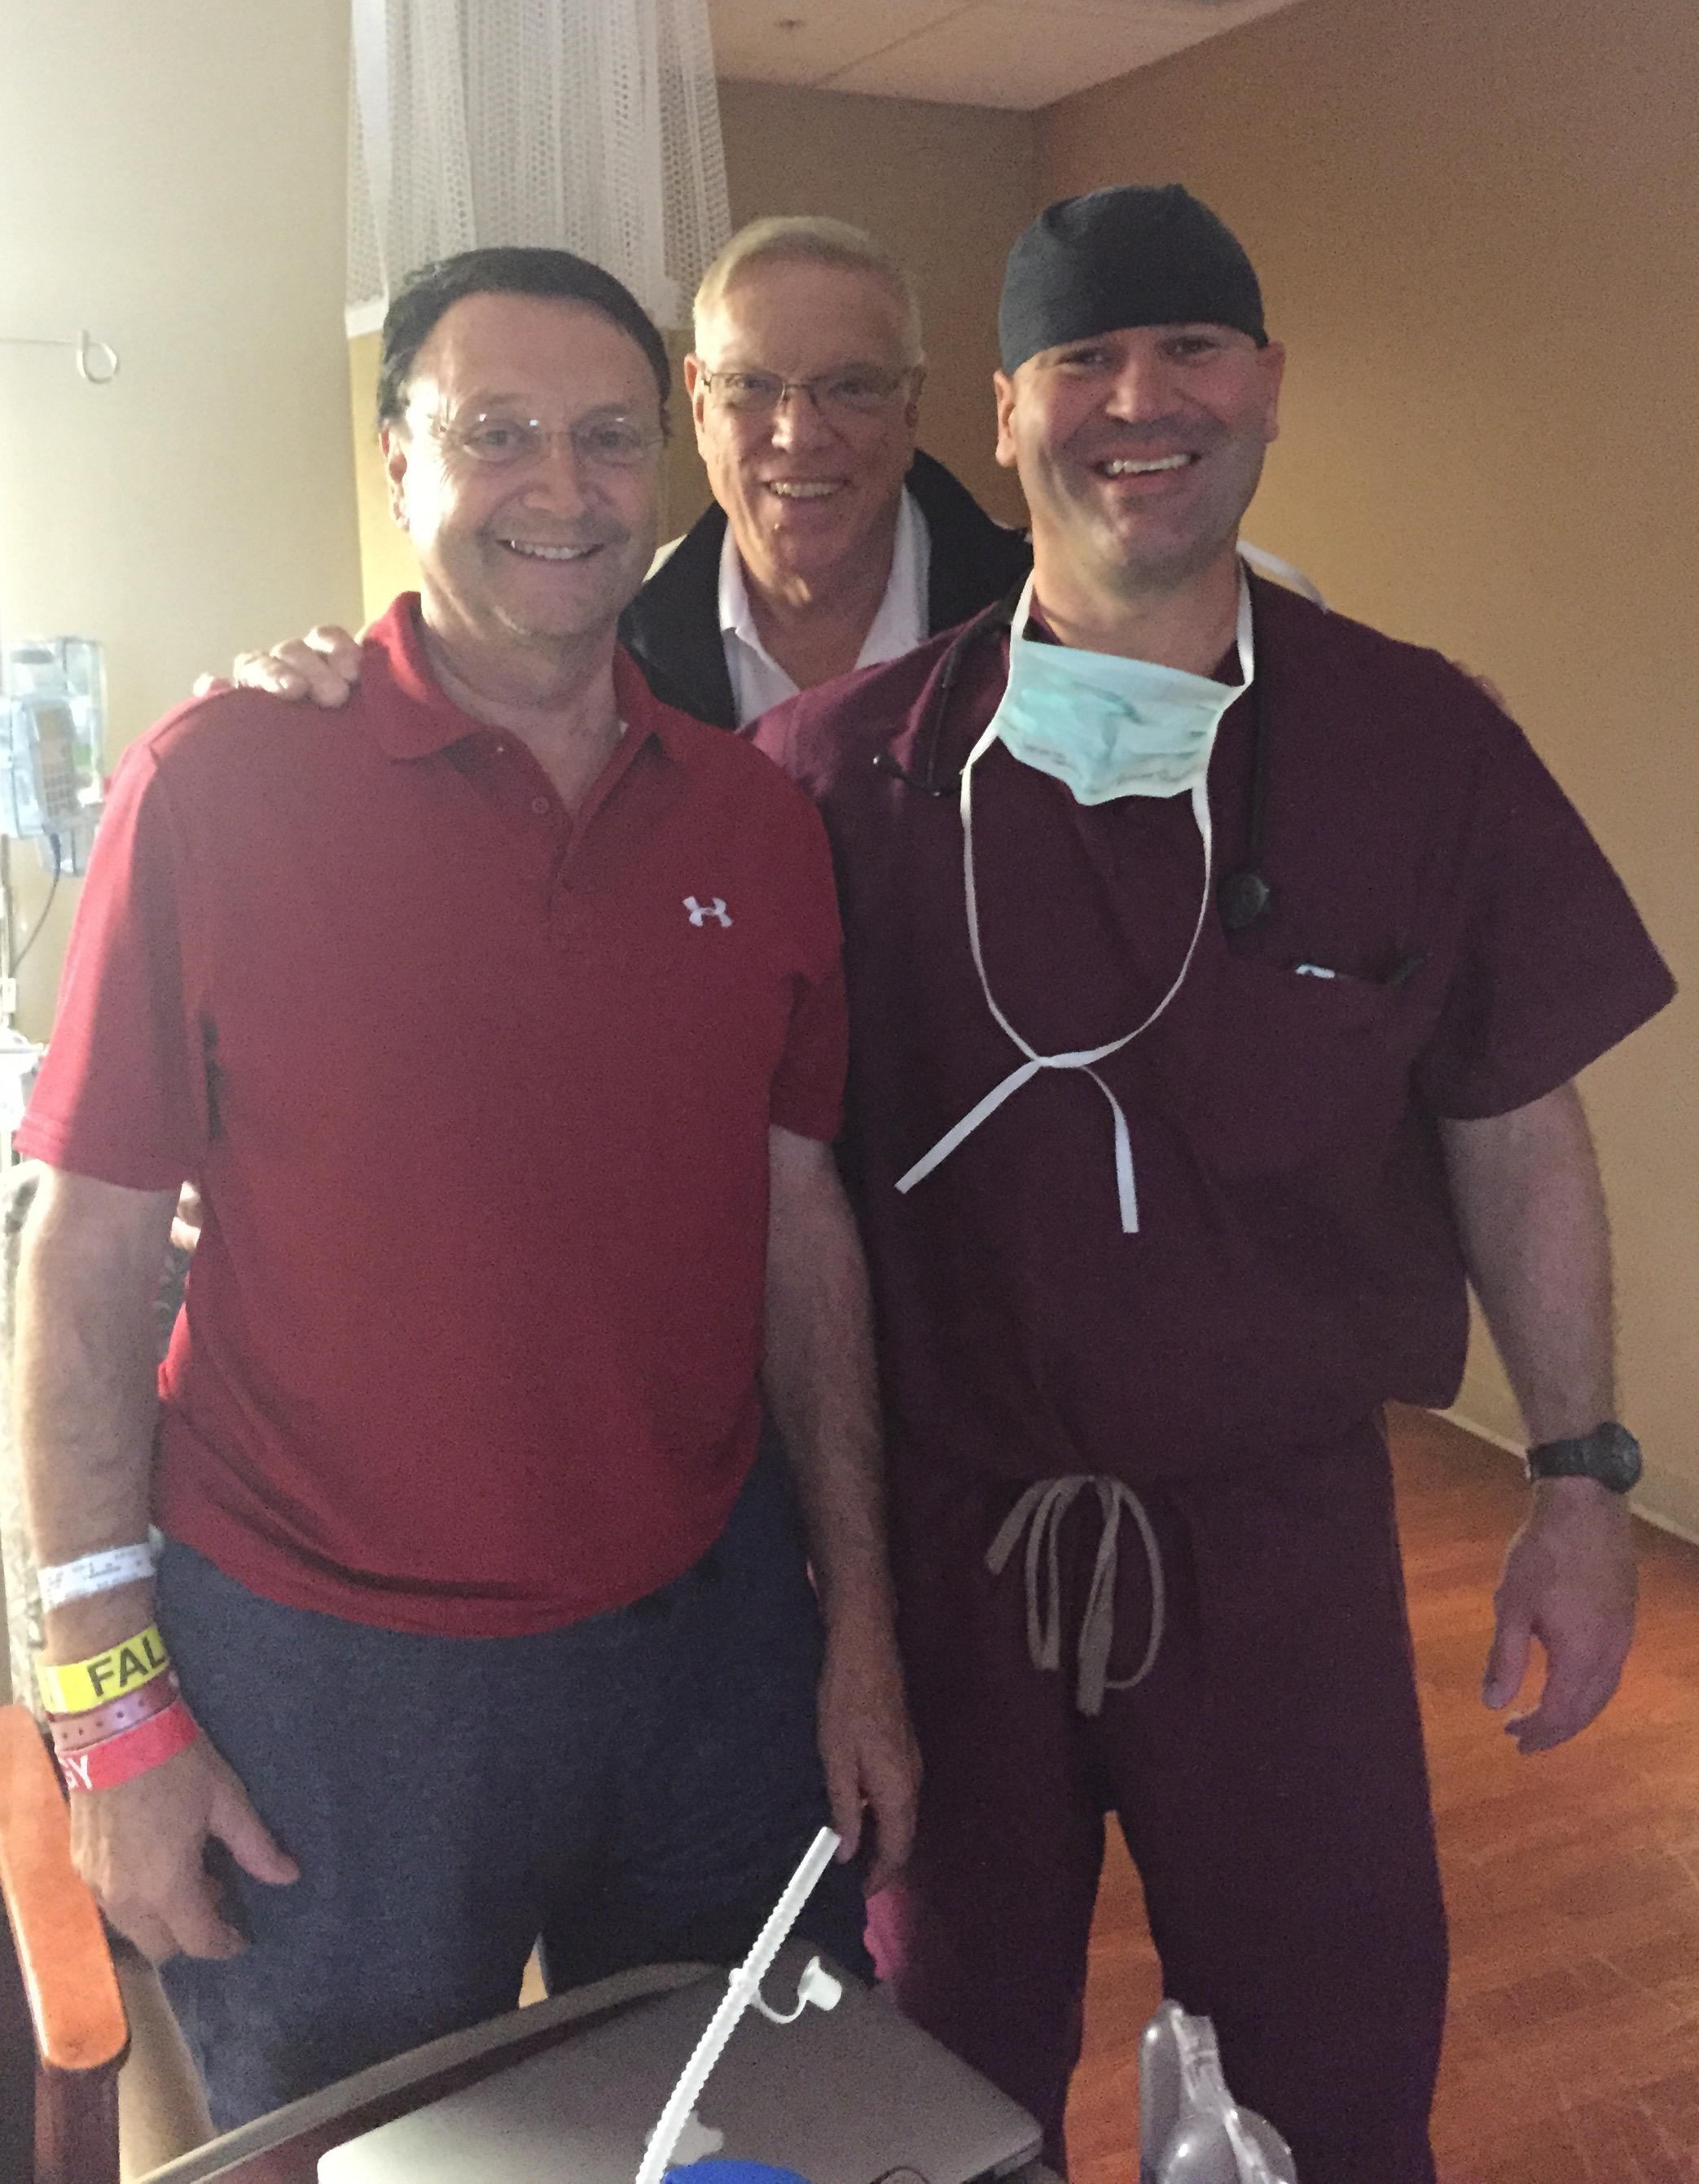 Tim, Dr. Lesnock and Dr. Matusic